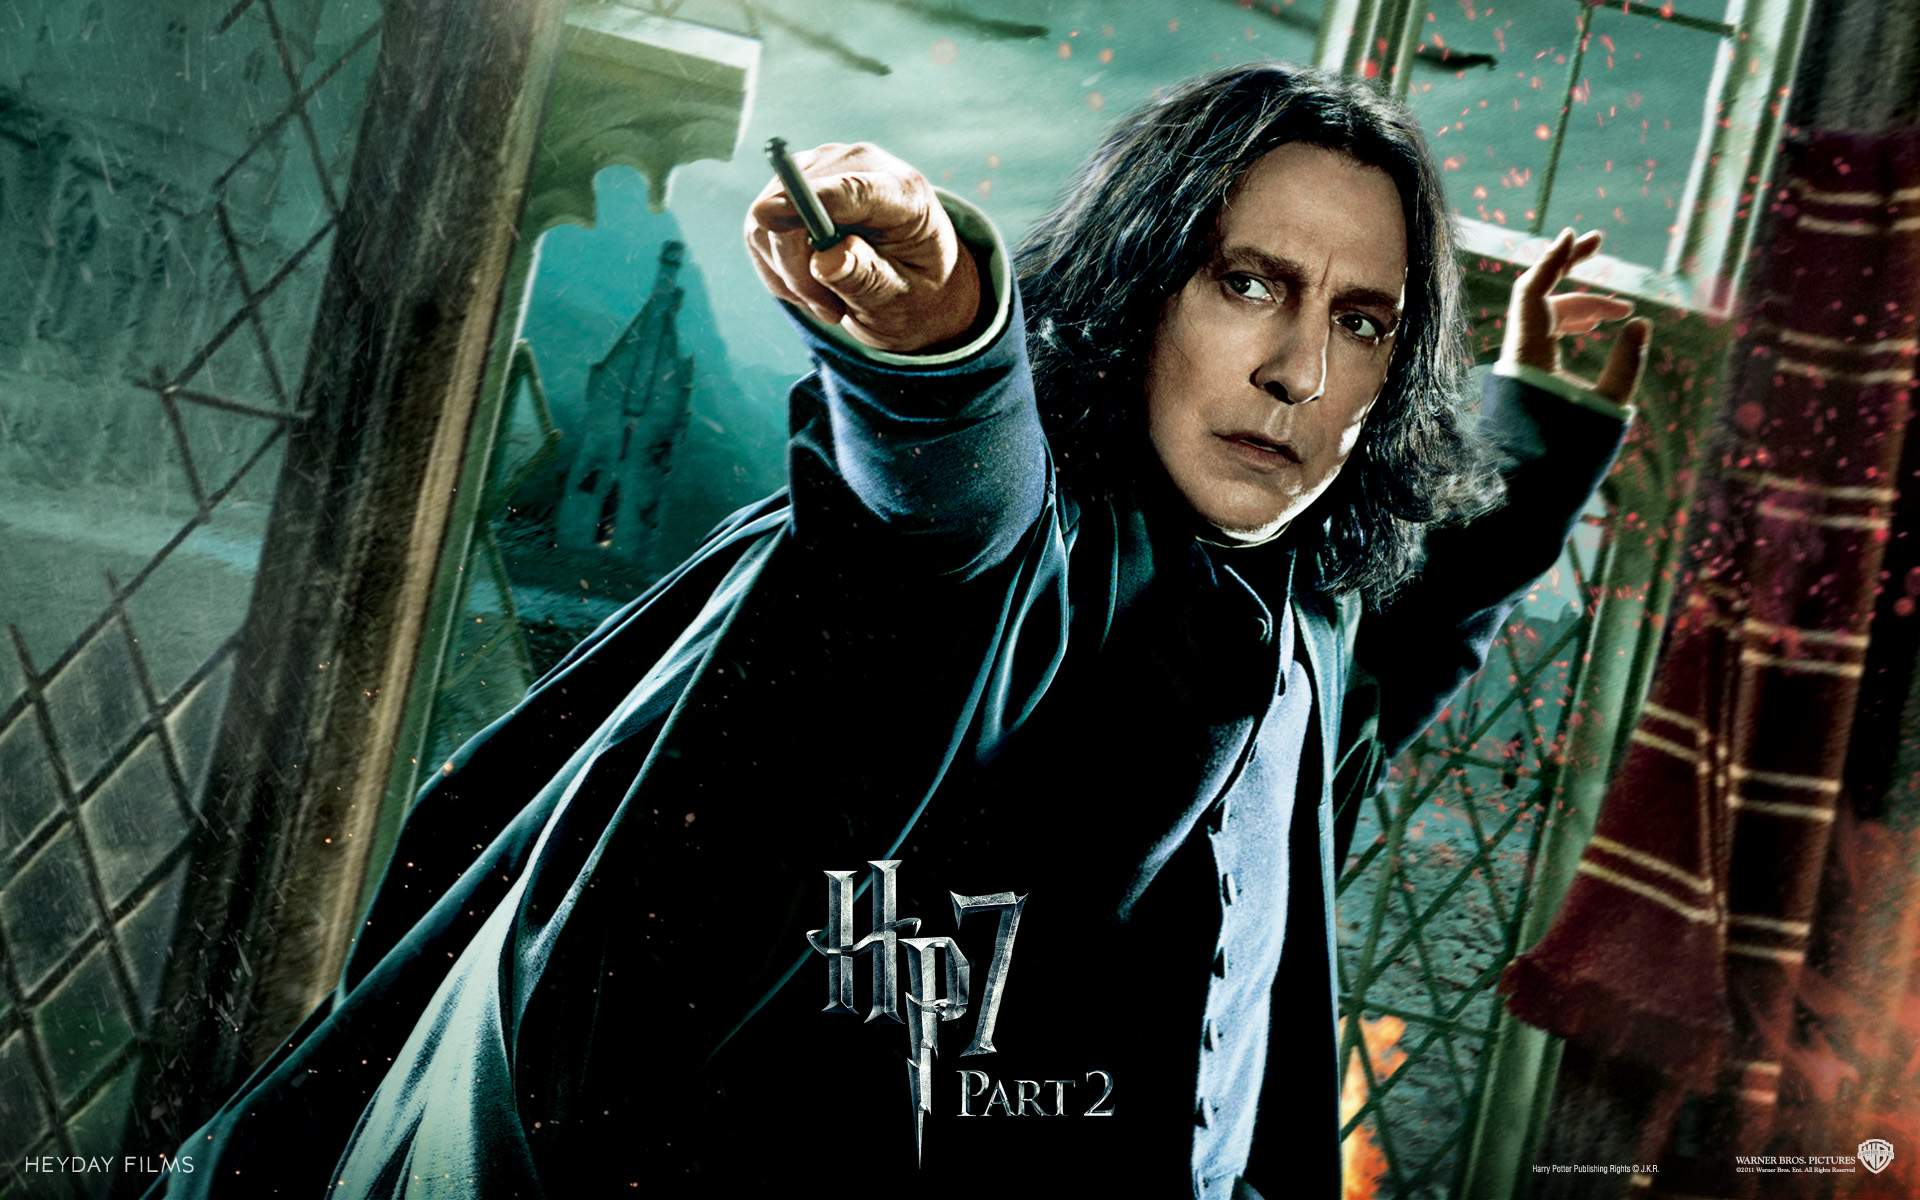 Wallpaper HP7 Professor Severus Snape - Alan Rickman Harry Potter